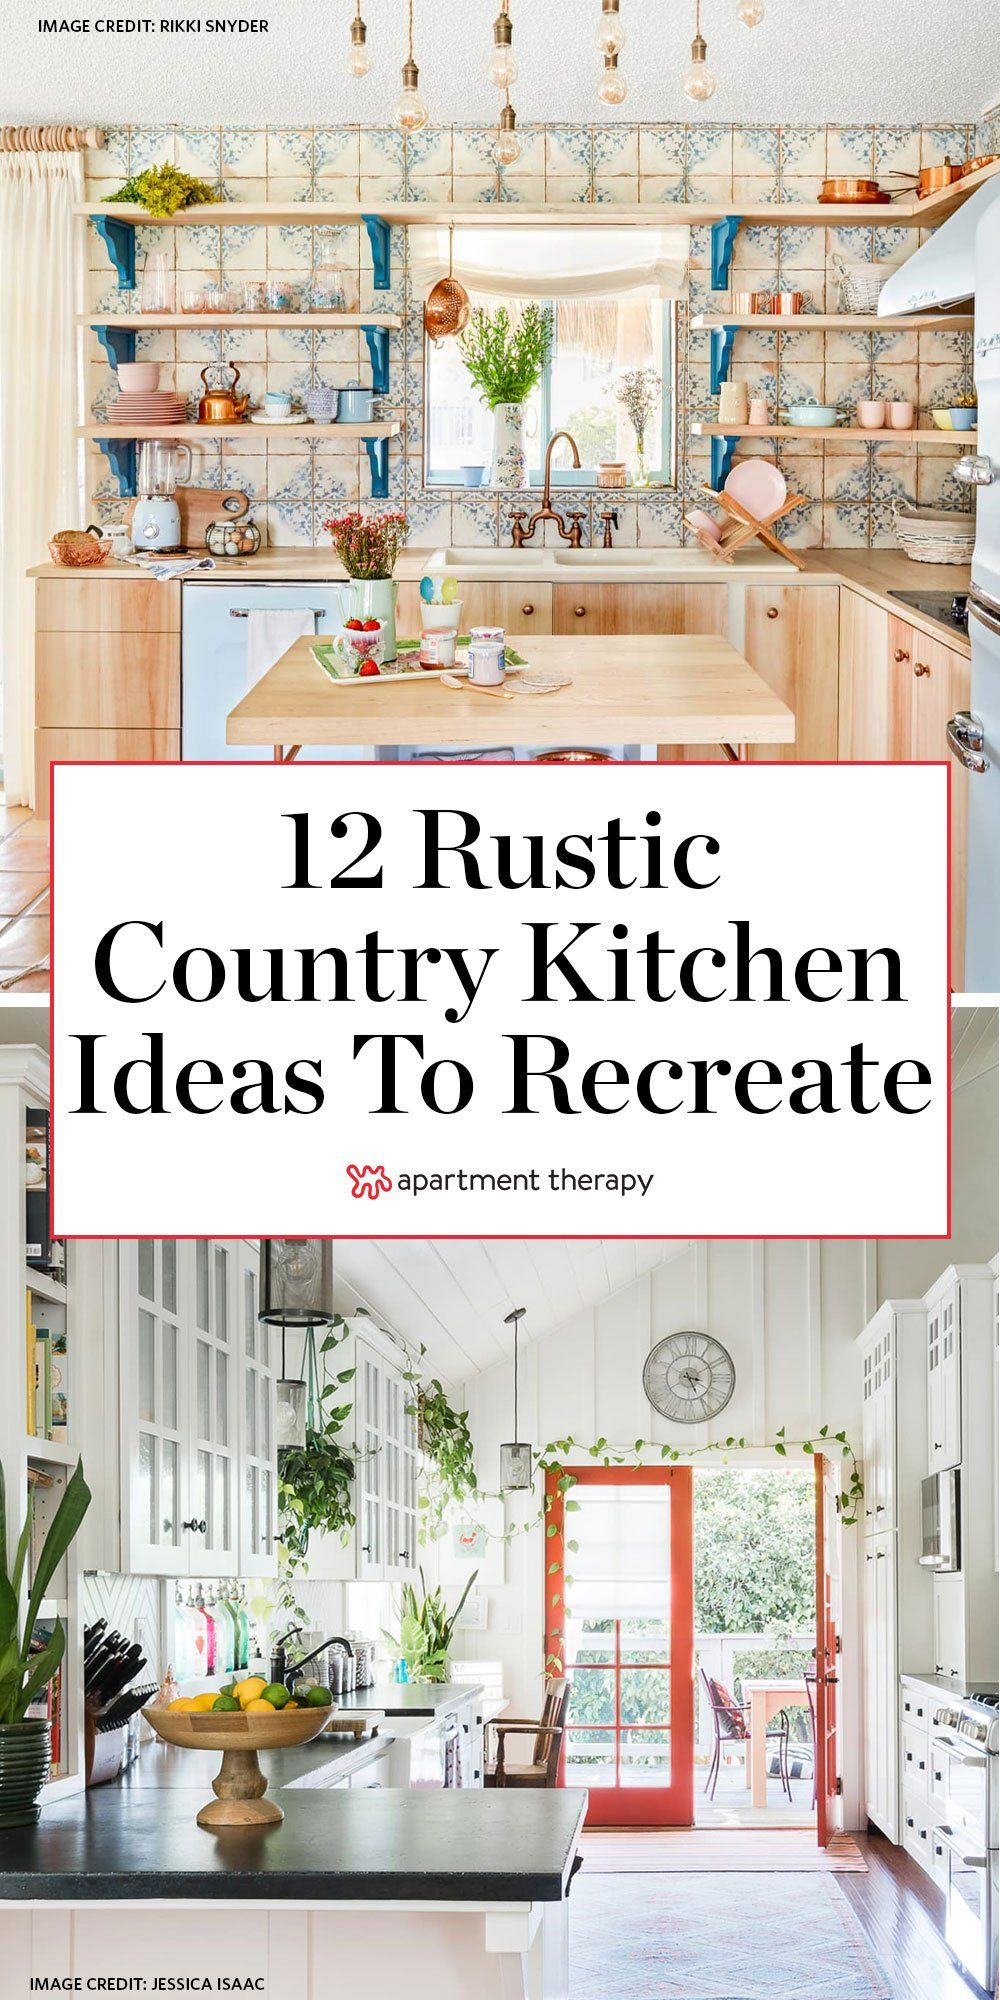 Looking to bring some rustic charm into your space? From painted cabinets to breakfast nooks and beyond, read on for the country kitchen ideas we can't get enough of right now.  #countrykitchen #rustickitchen #farmhouse #farmhousedecor #kitchendecor #kitchenideas #rusticdecor #countrydecor #kitchendecorideas #kitchentrends